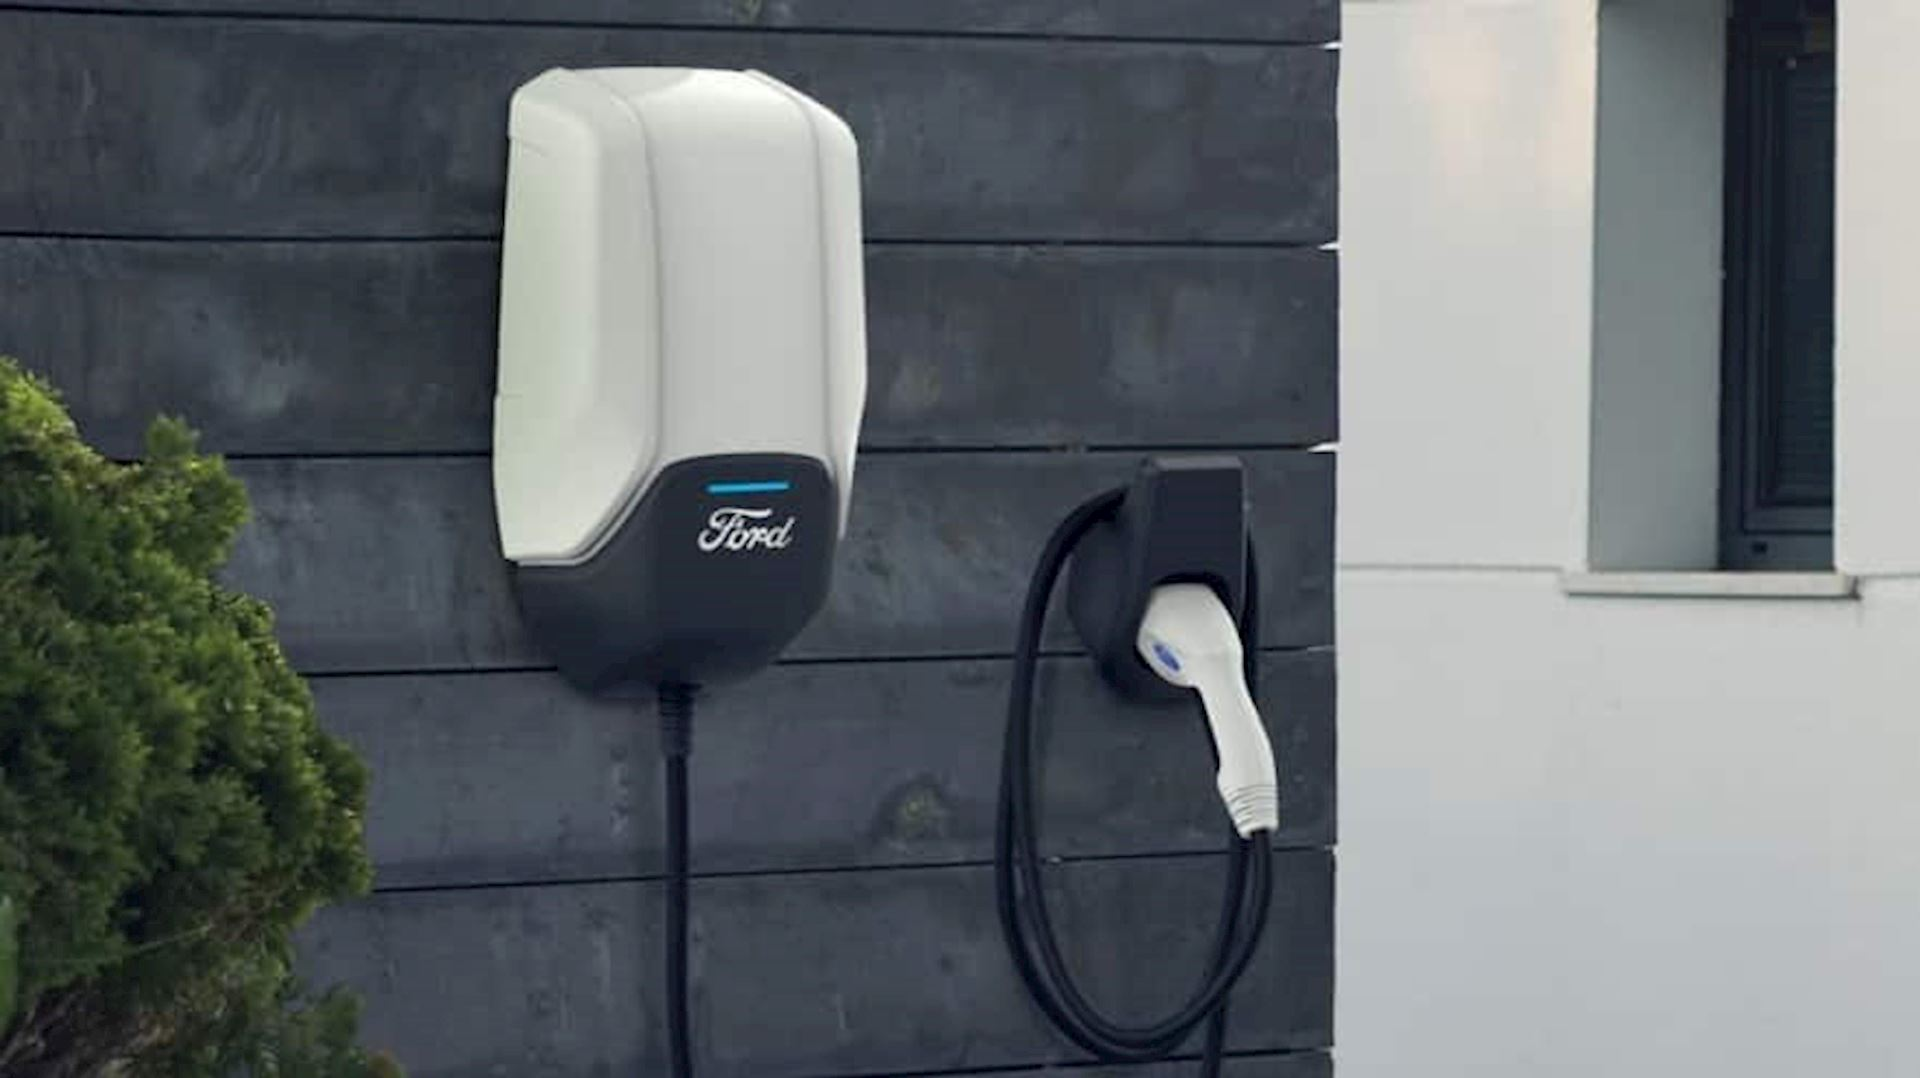 FORD INTRODUCES USA's LARGEST ELECTRIC VEHICLE CHARGING NETWORK